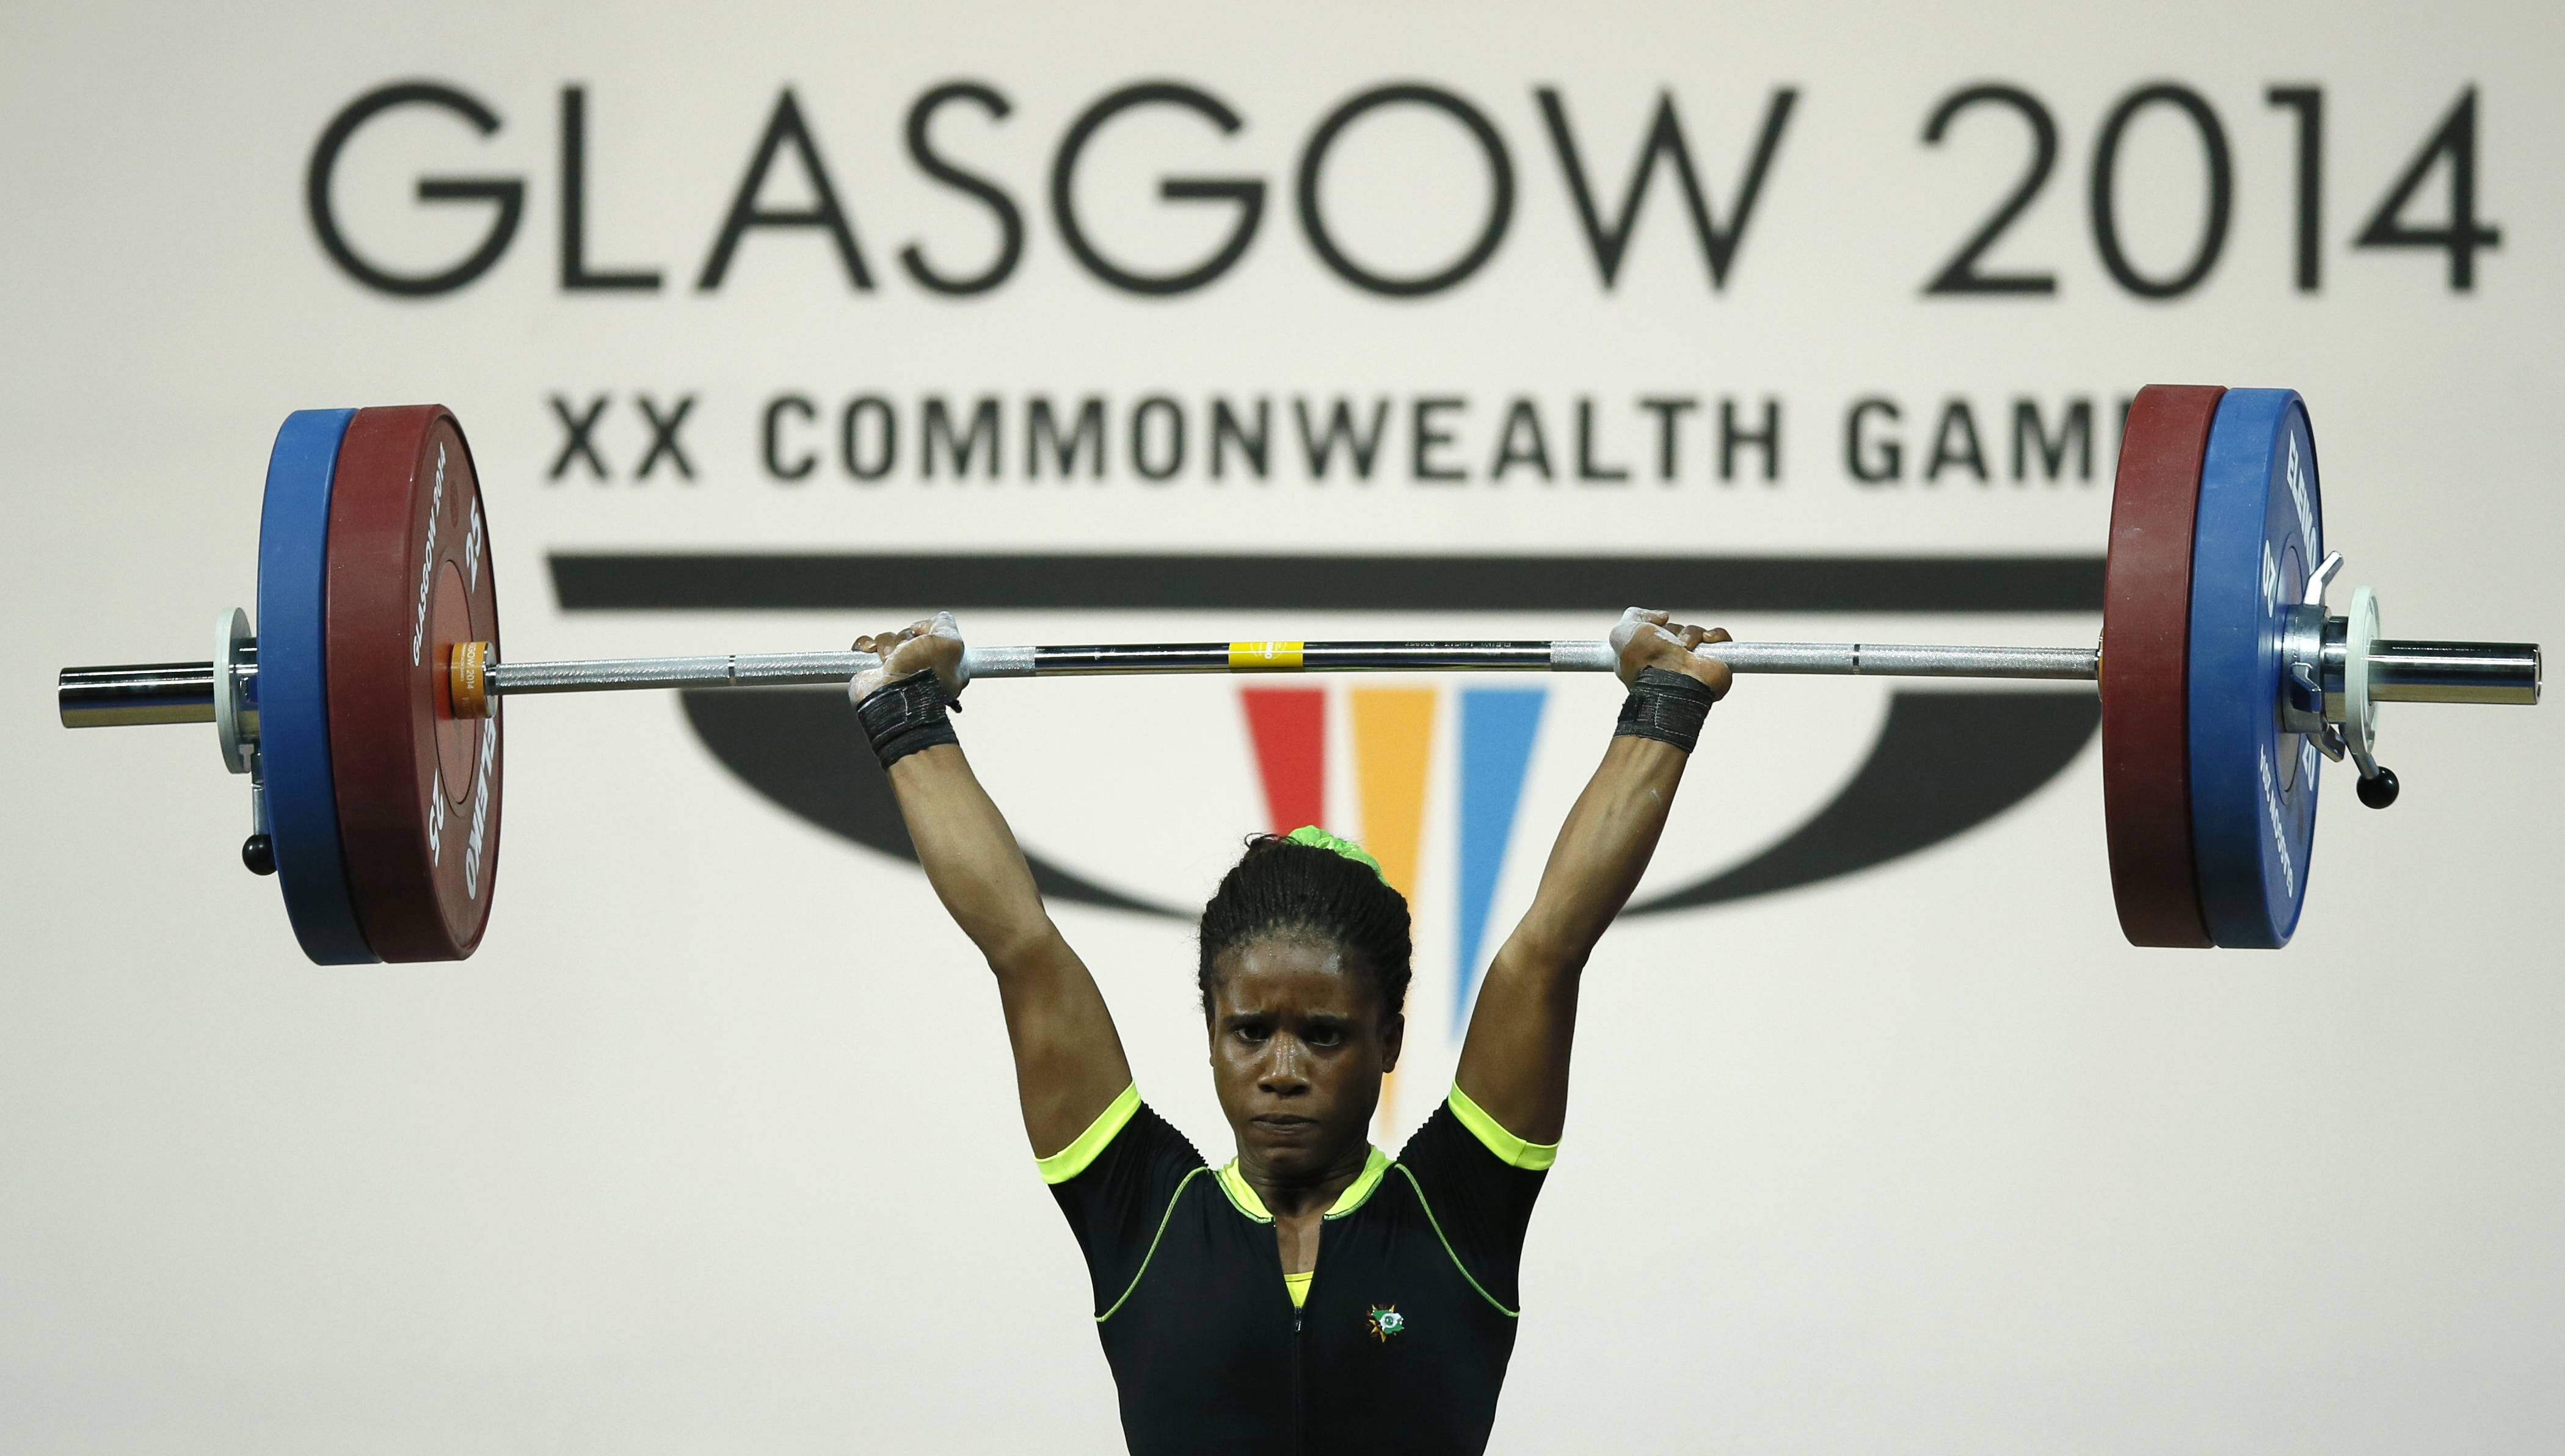 Chika Amalaha of Nigeria won the gold medal in the women's 53 kg weightlifting competition at the Commonwealth Games Glasgow 2014, but she failed a doping test and has been provisionally suspended from the games. Commonwealth Games Federation chief executive Mike Hooper said Tuesday July 29, 2014 that Amalaha tested positive for diuretics and masking agents after being tested on July 25.